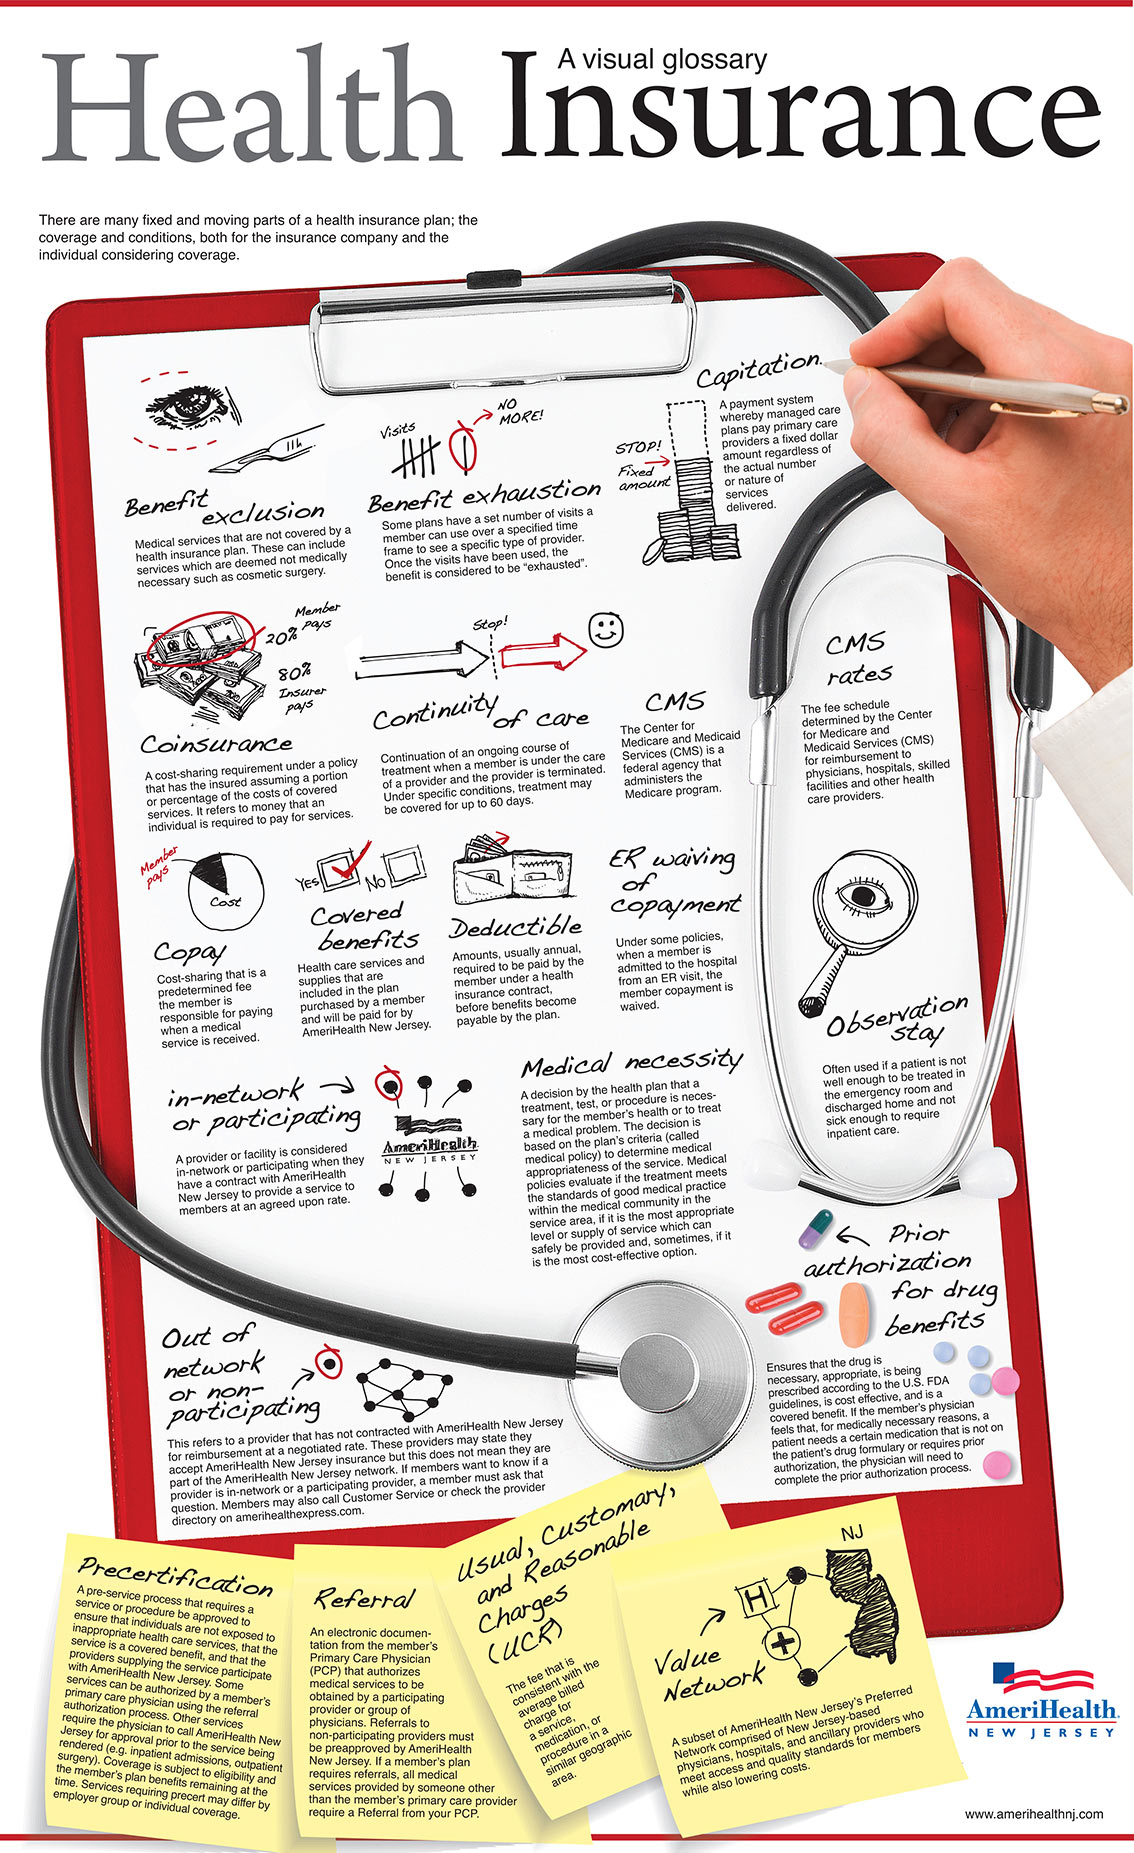 Health Insurance Visual Glossary Infographic